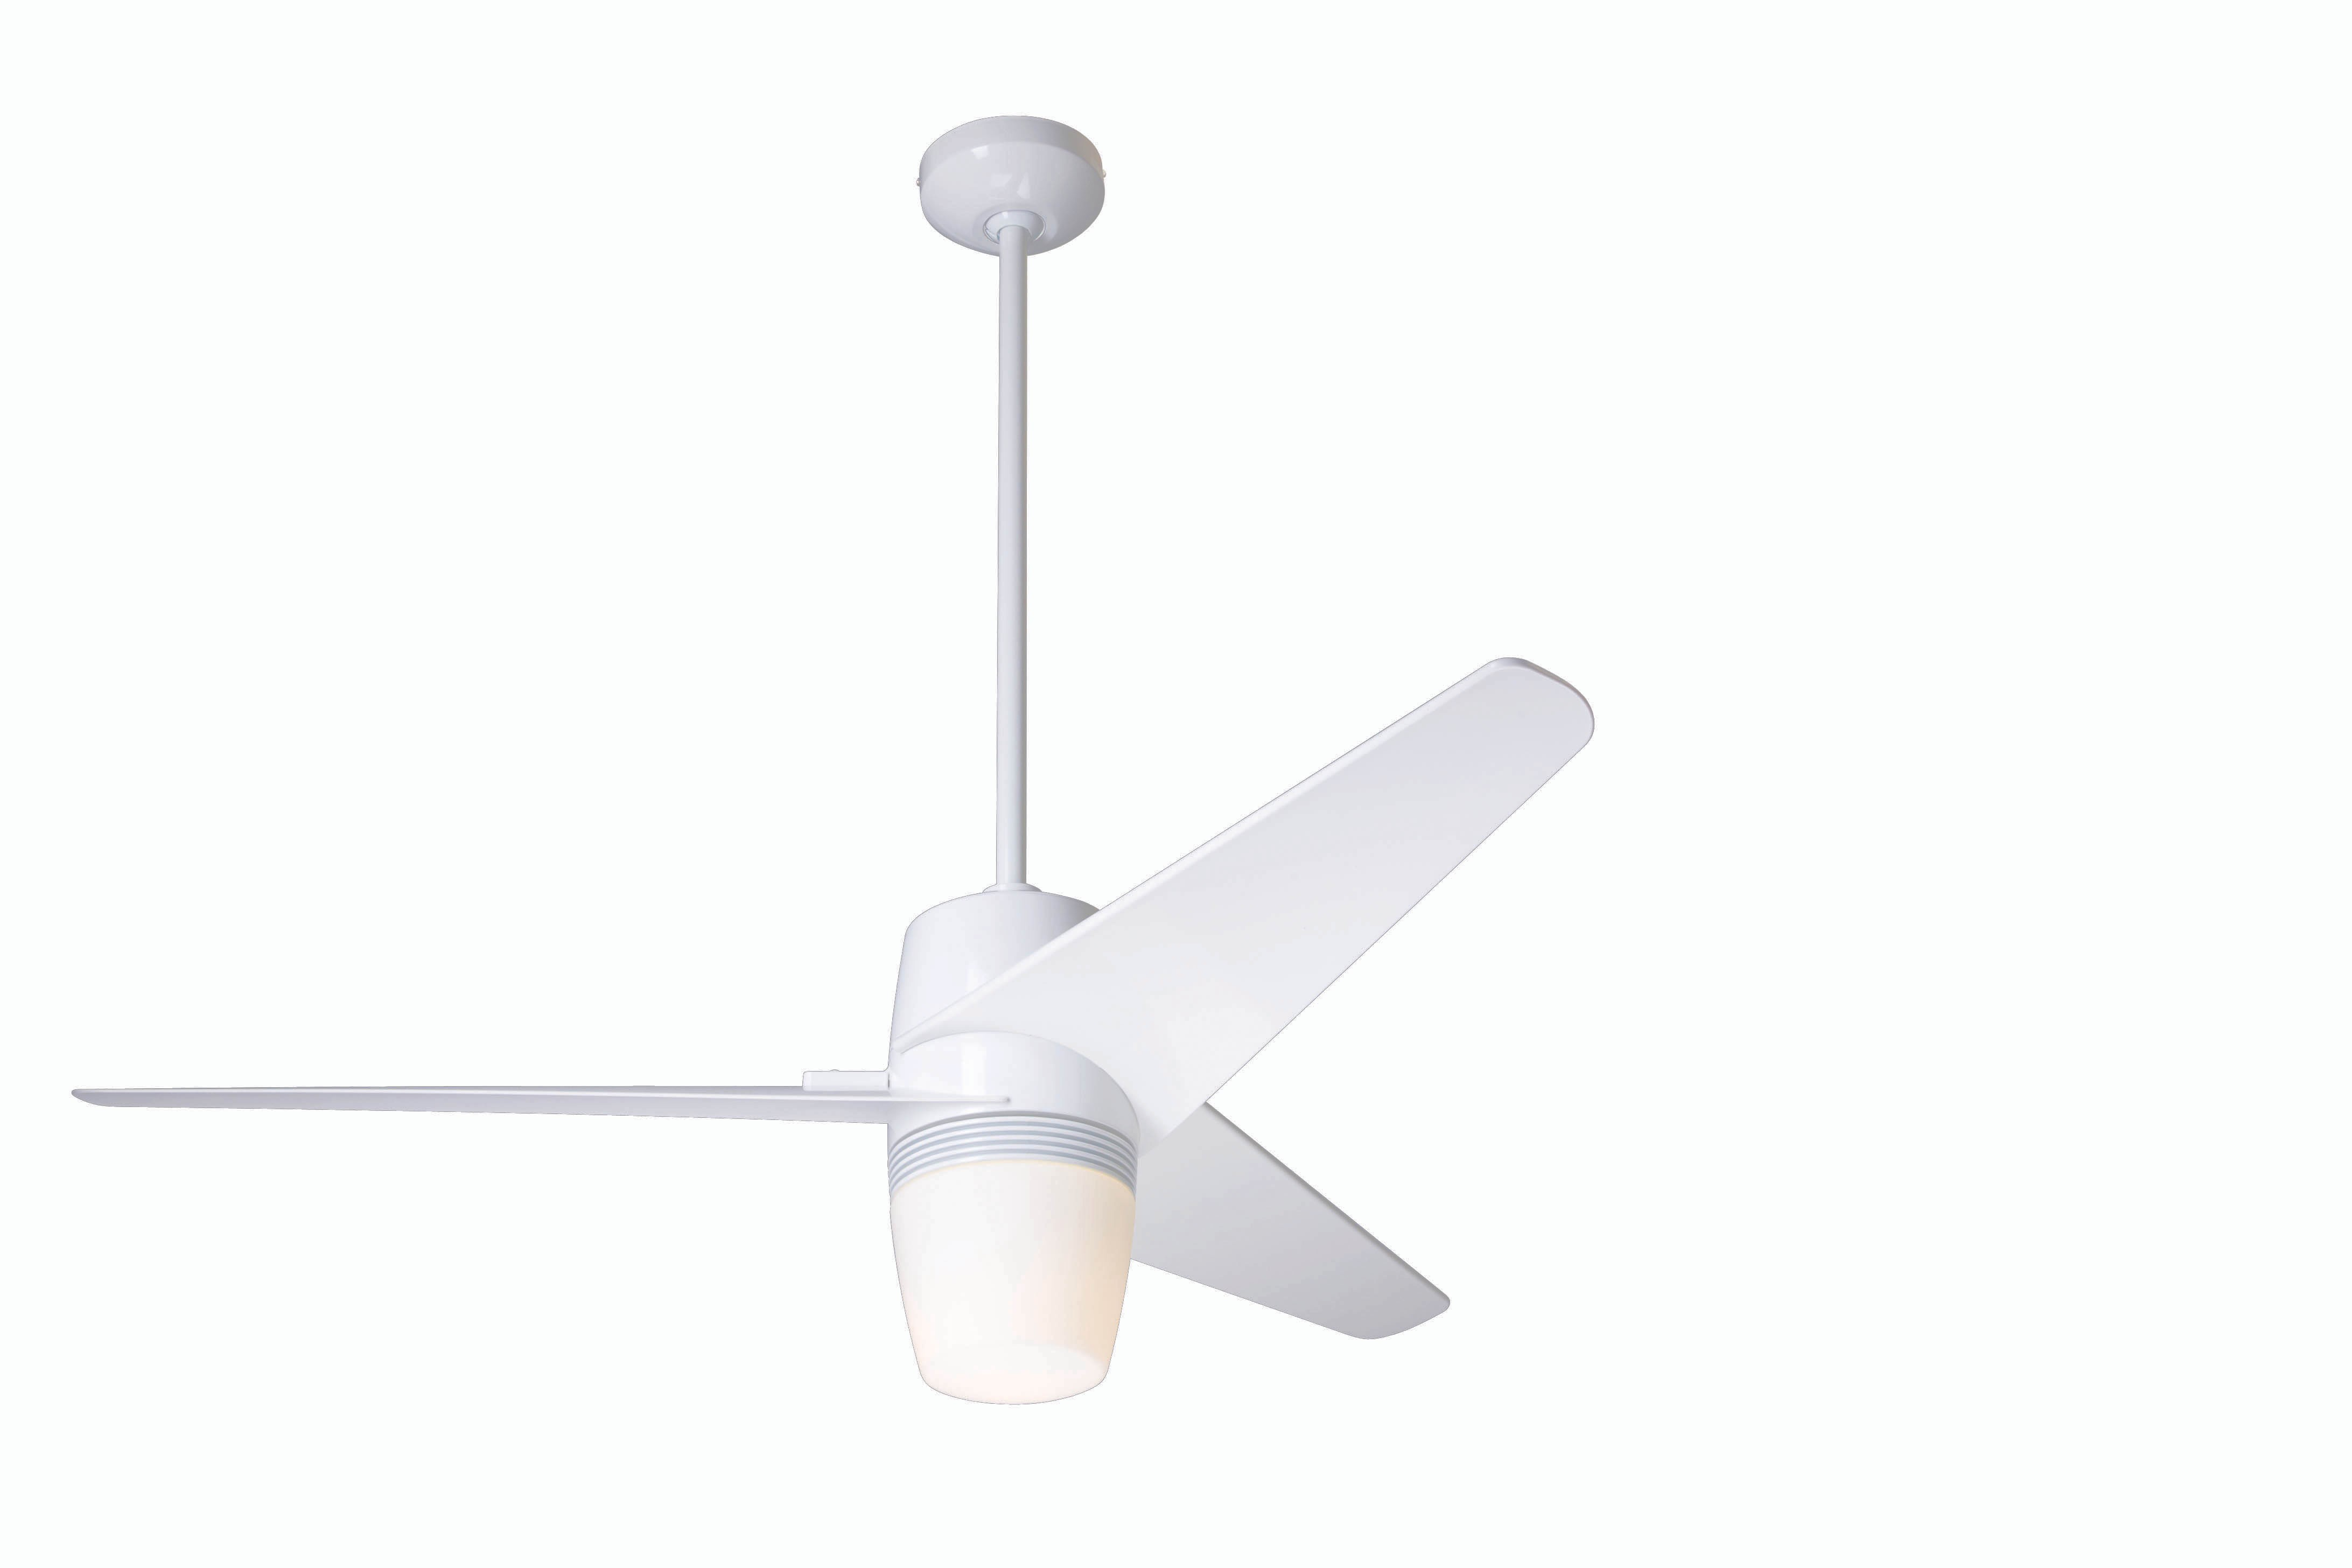 Modern fan company vel gw 50 nk 851 nc velo gloss white ceiling fan - Modern white ceiling fan ...